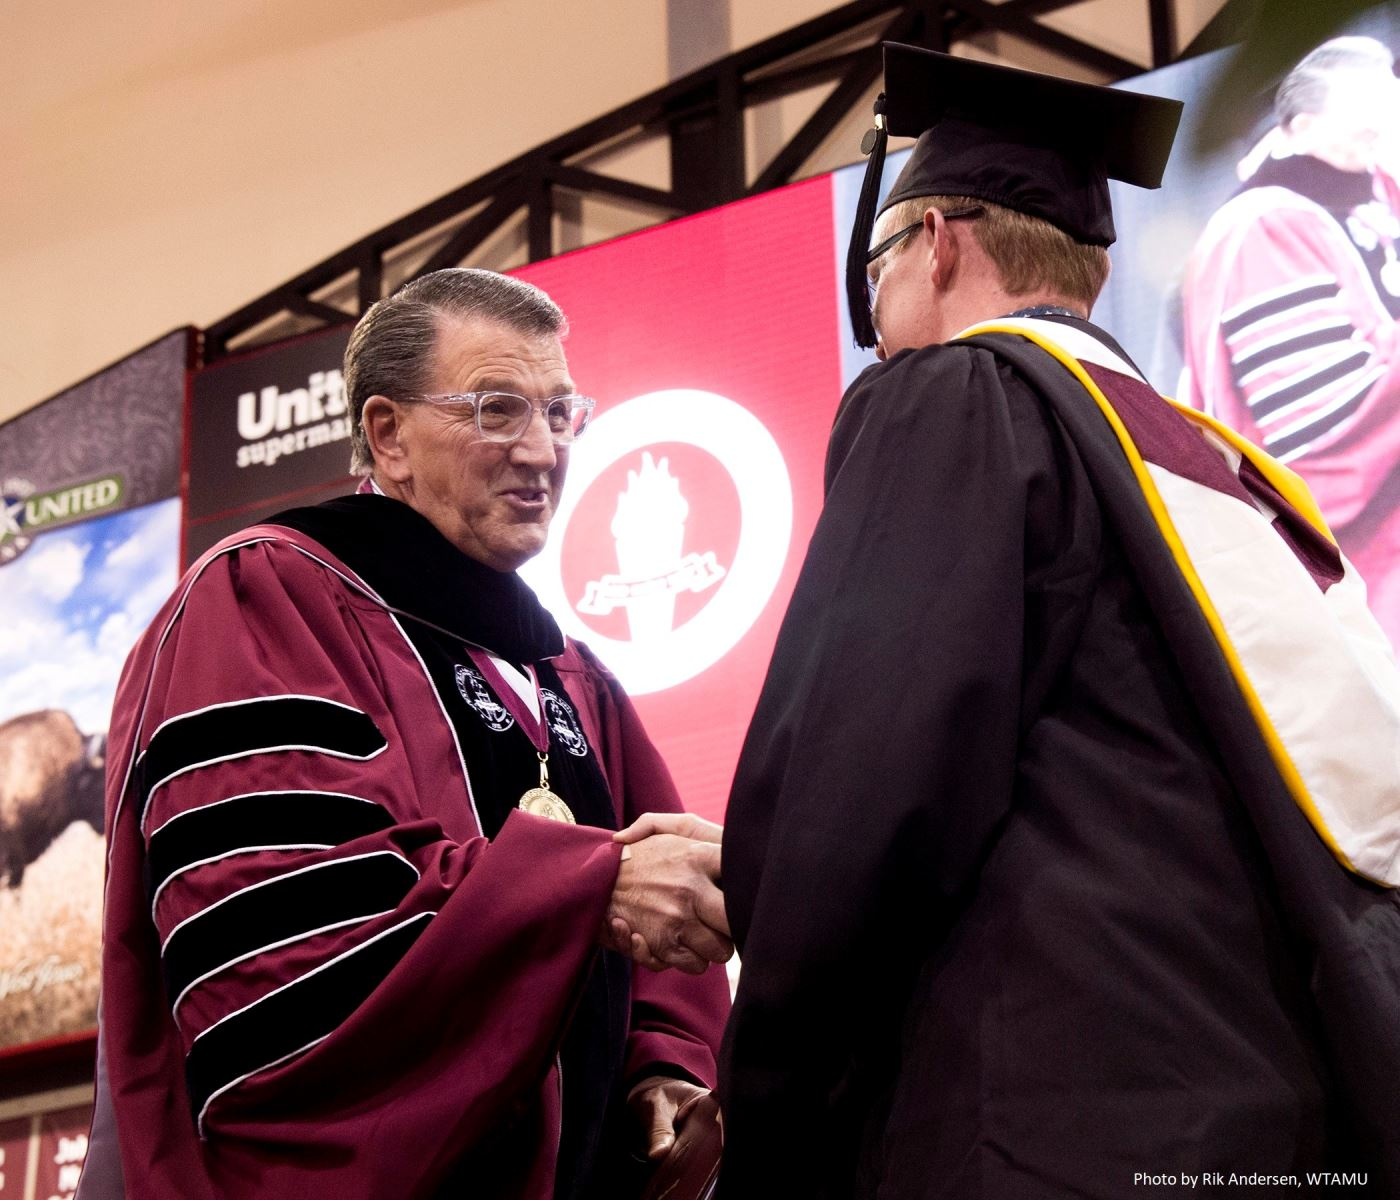 President Wendler shaking hand of graduate at commencement